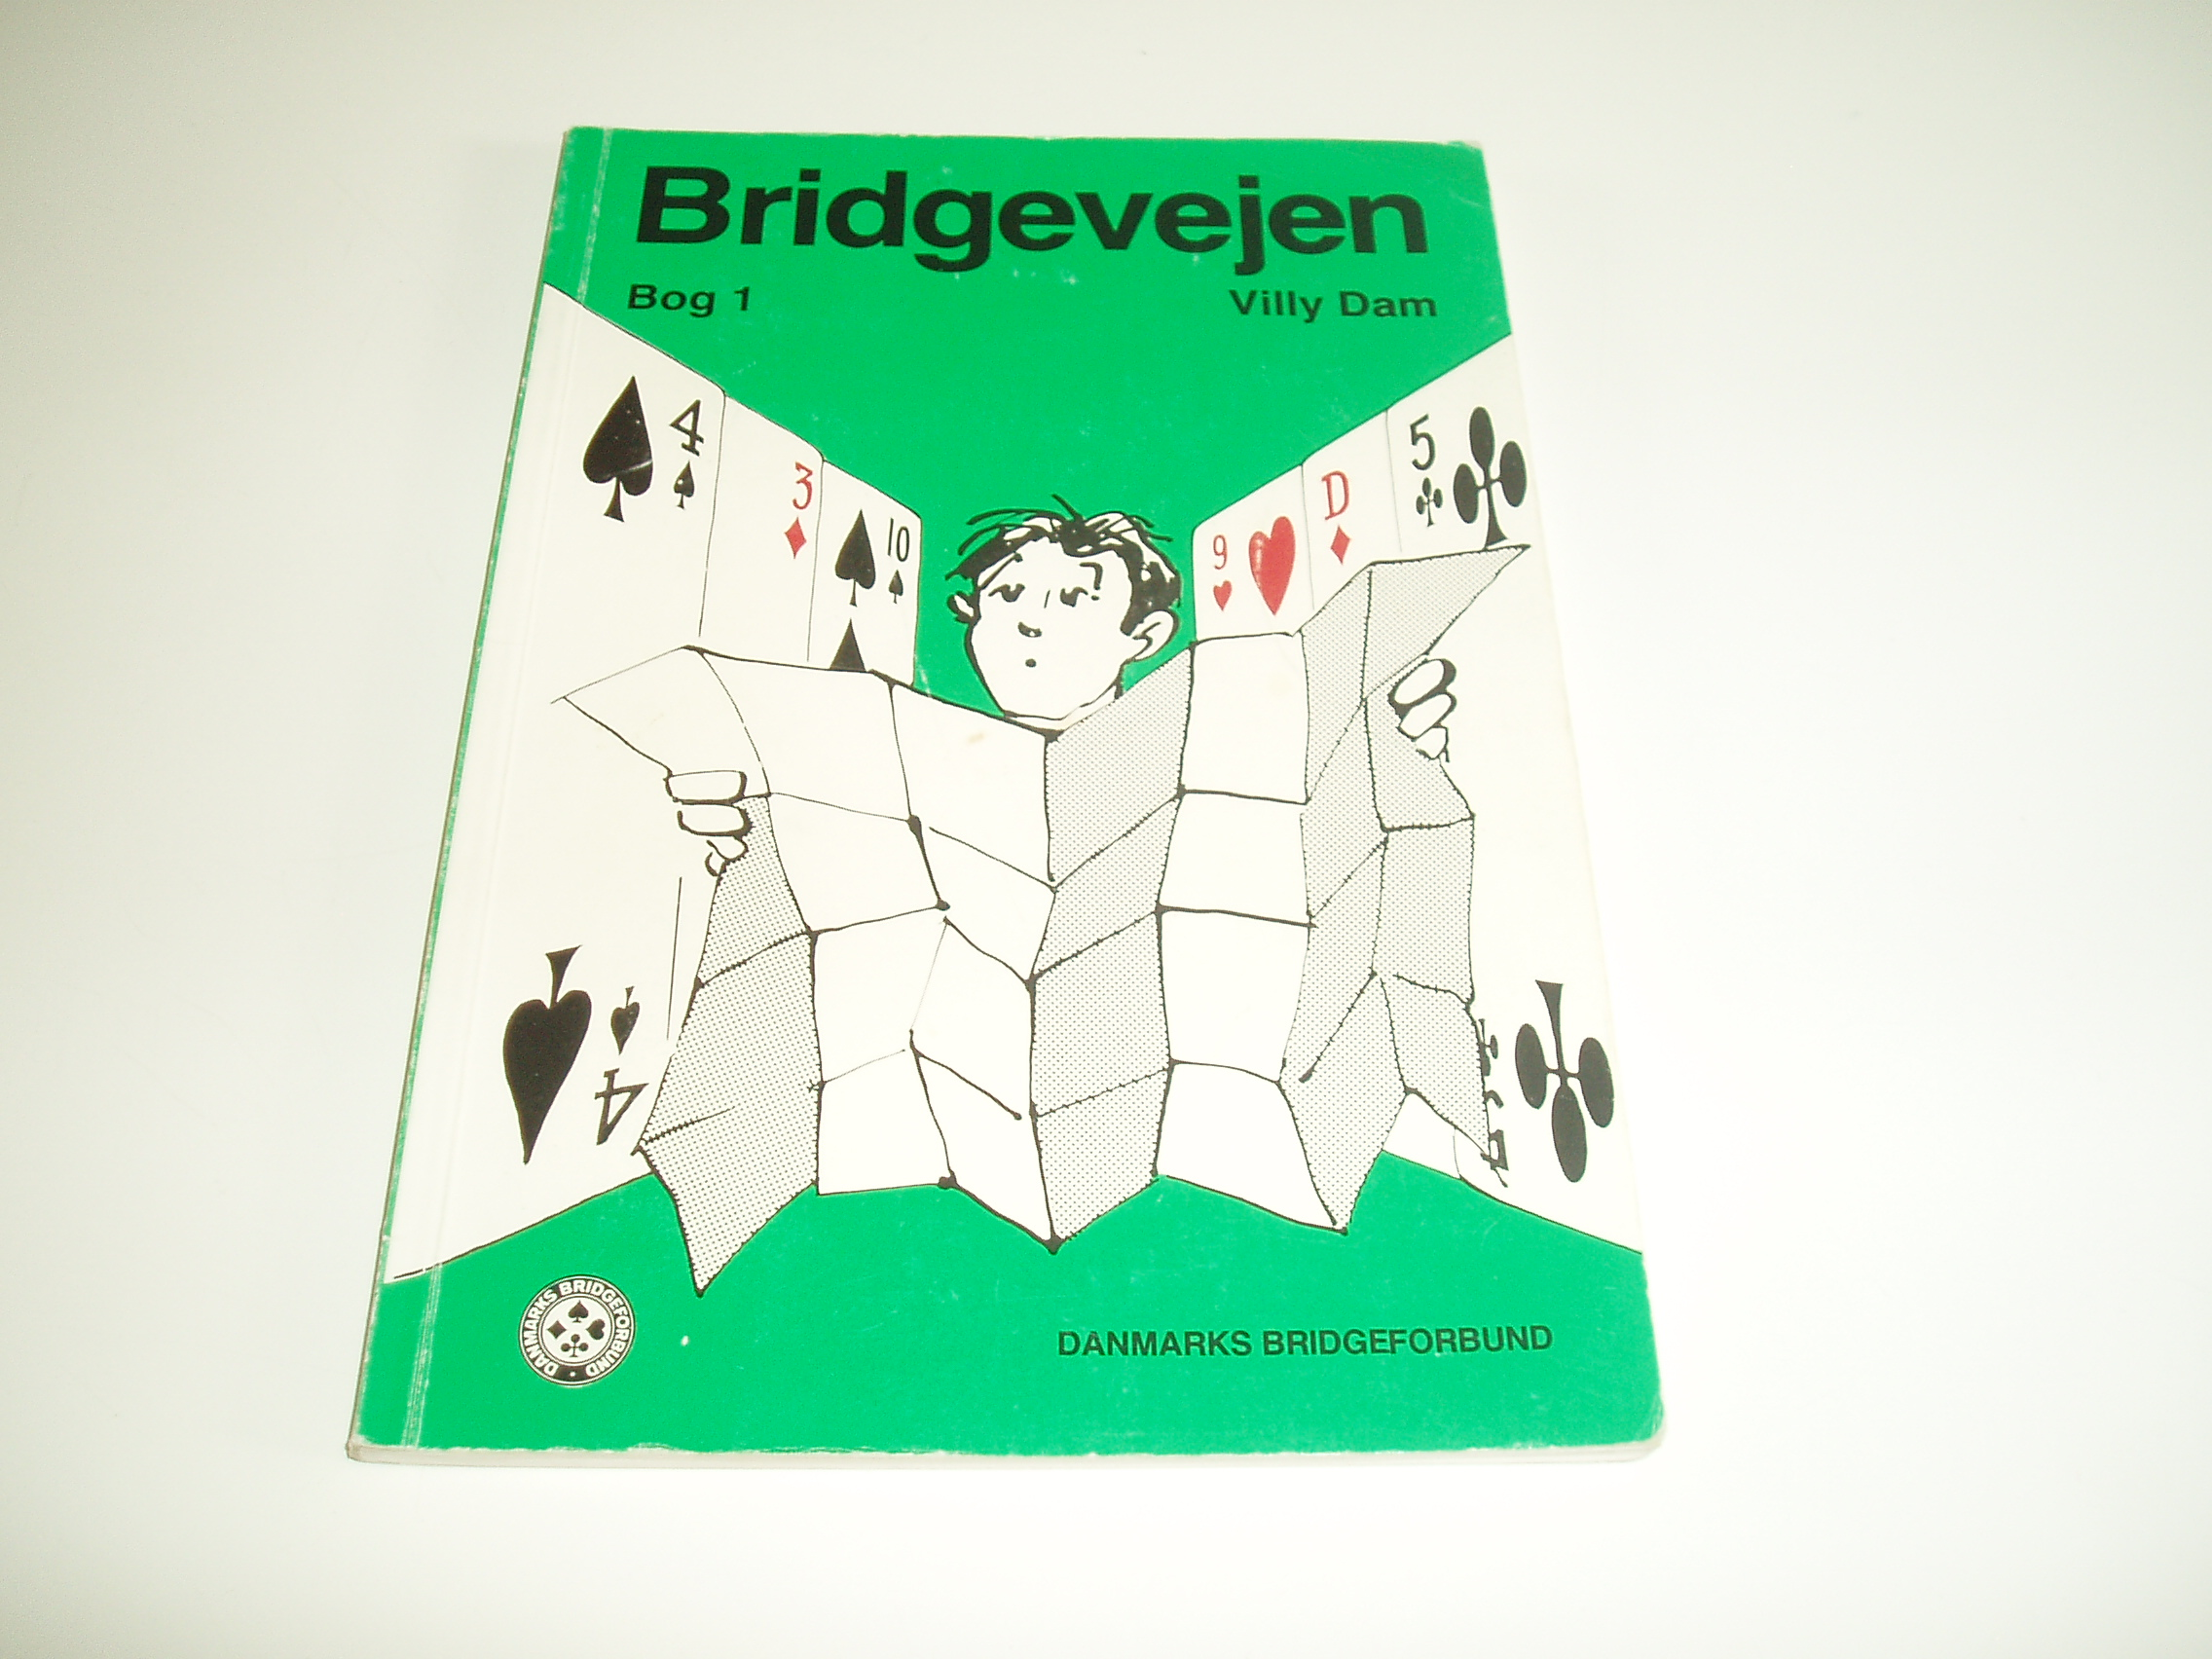 Bridgevejen, 1